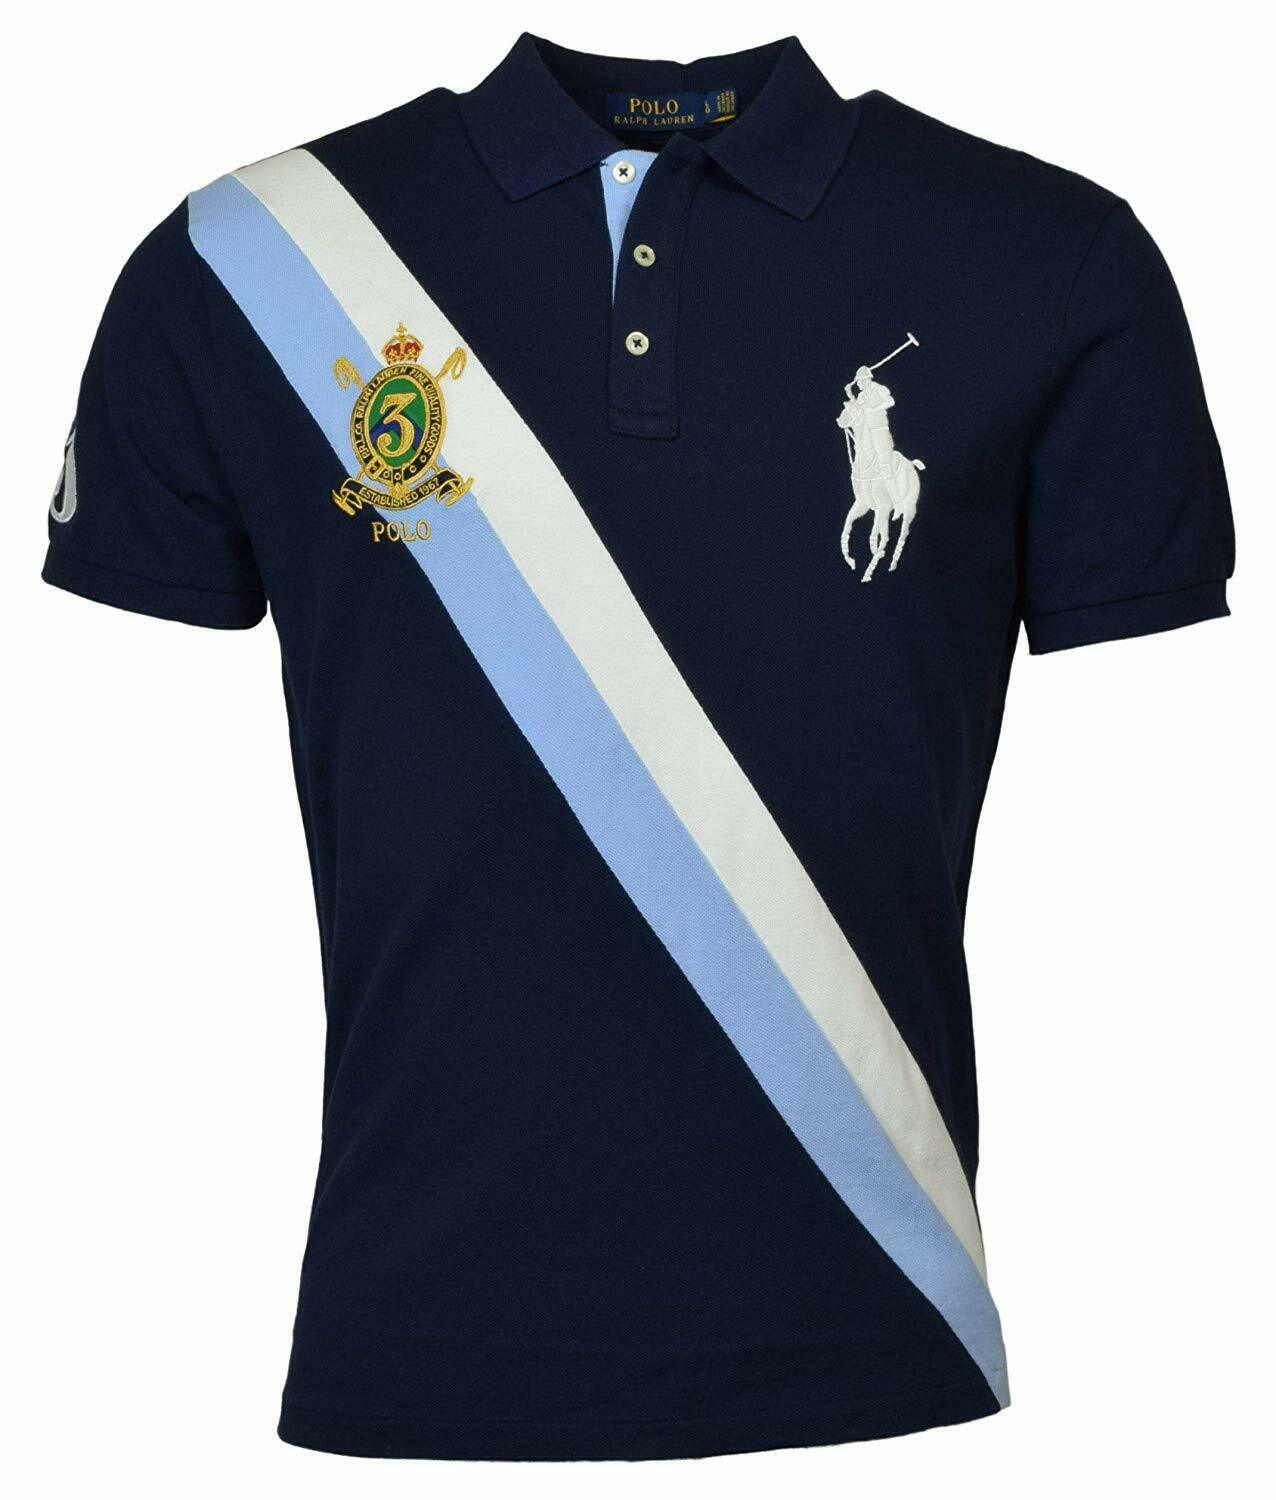 5f5fe63a S l1600. S l1600. Polo Ralph Lauren Mens Big Pony Custom Slim Fit Crest Polo  Shirt Blue, L 3055